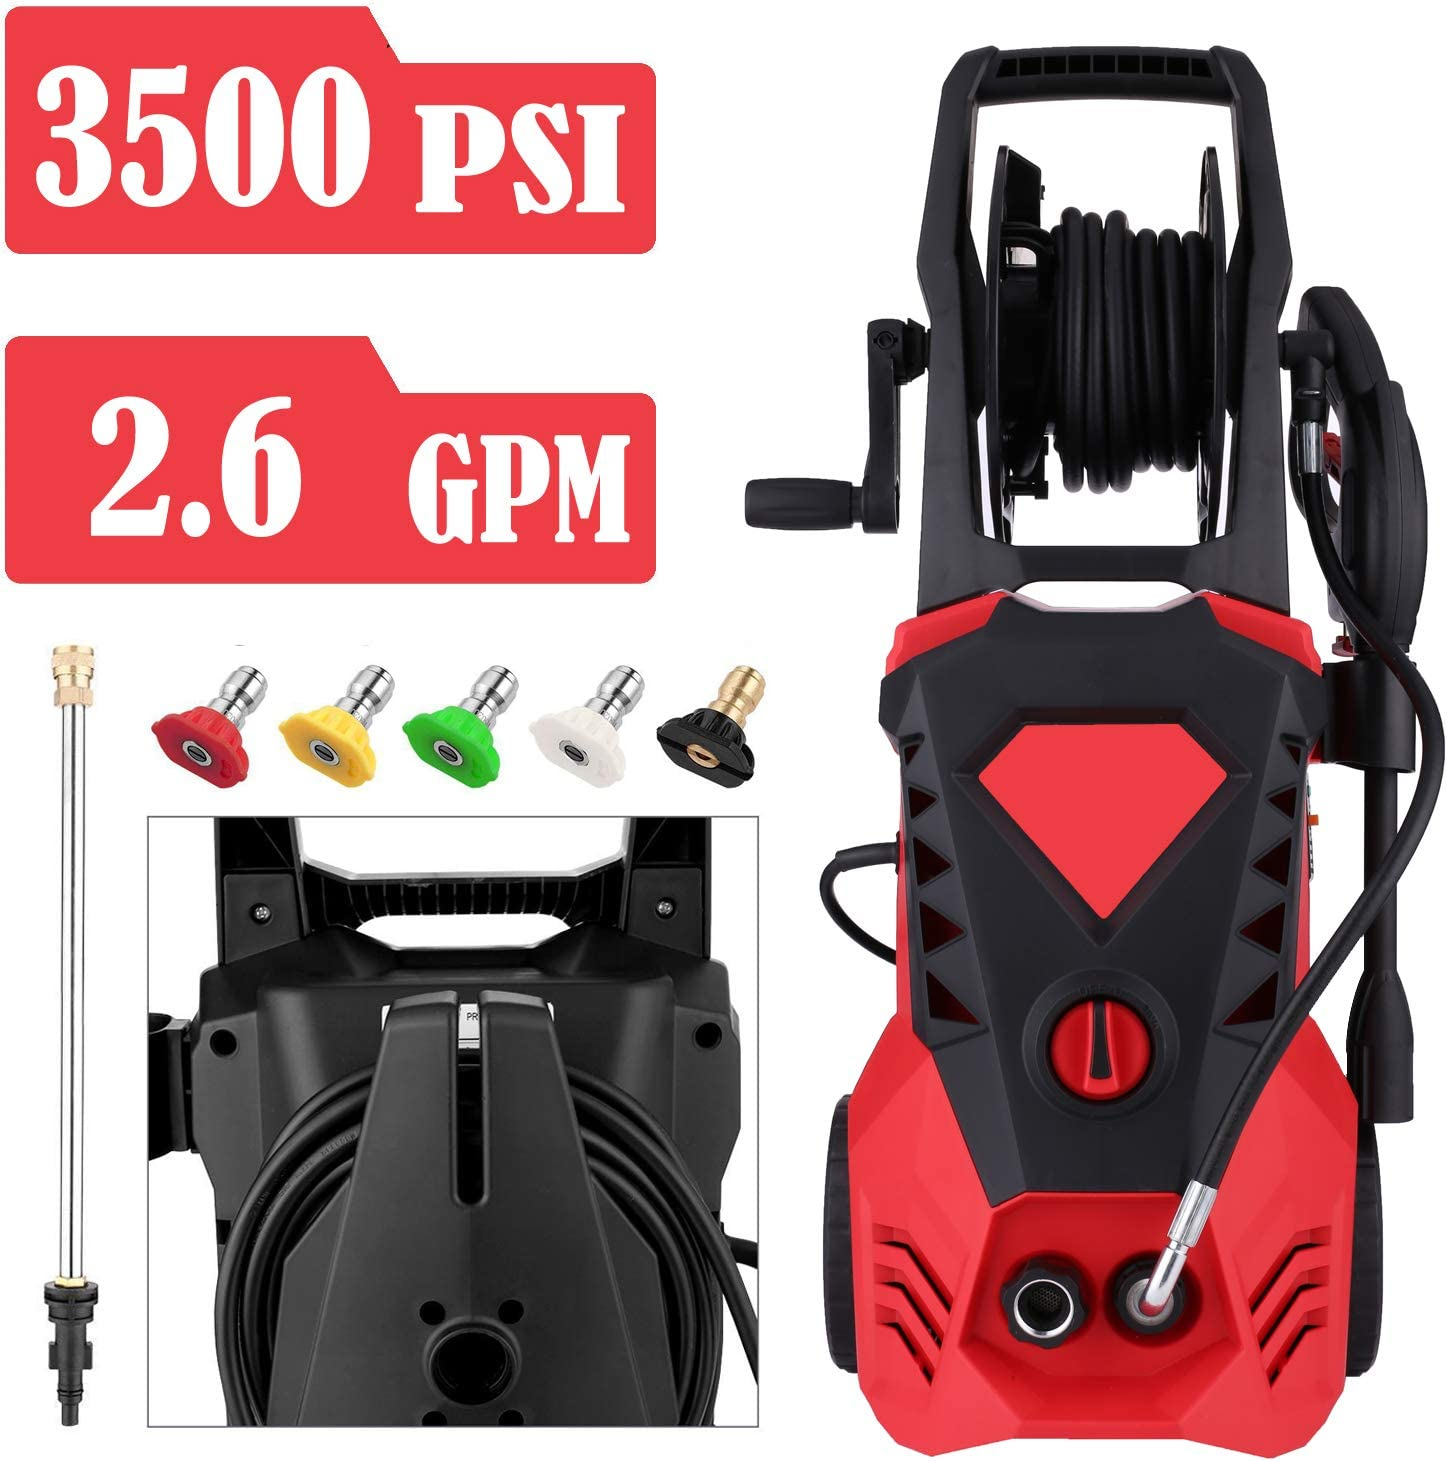 Power Washer 3500 PSI 2.6 GPM Electric Pressure Washer with Spray Gun